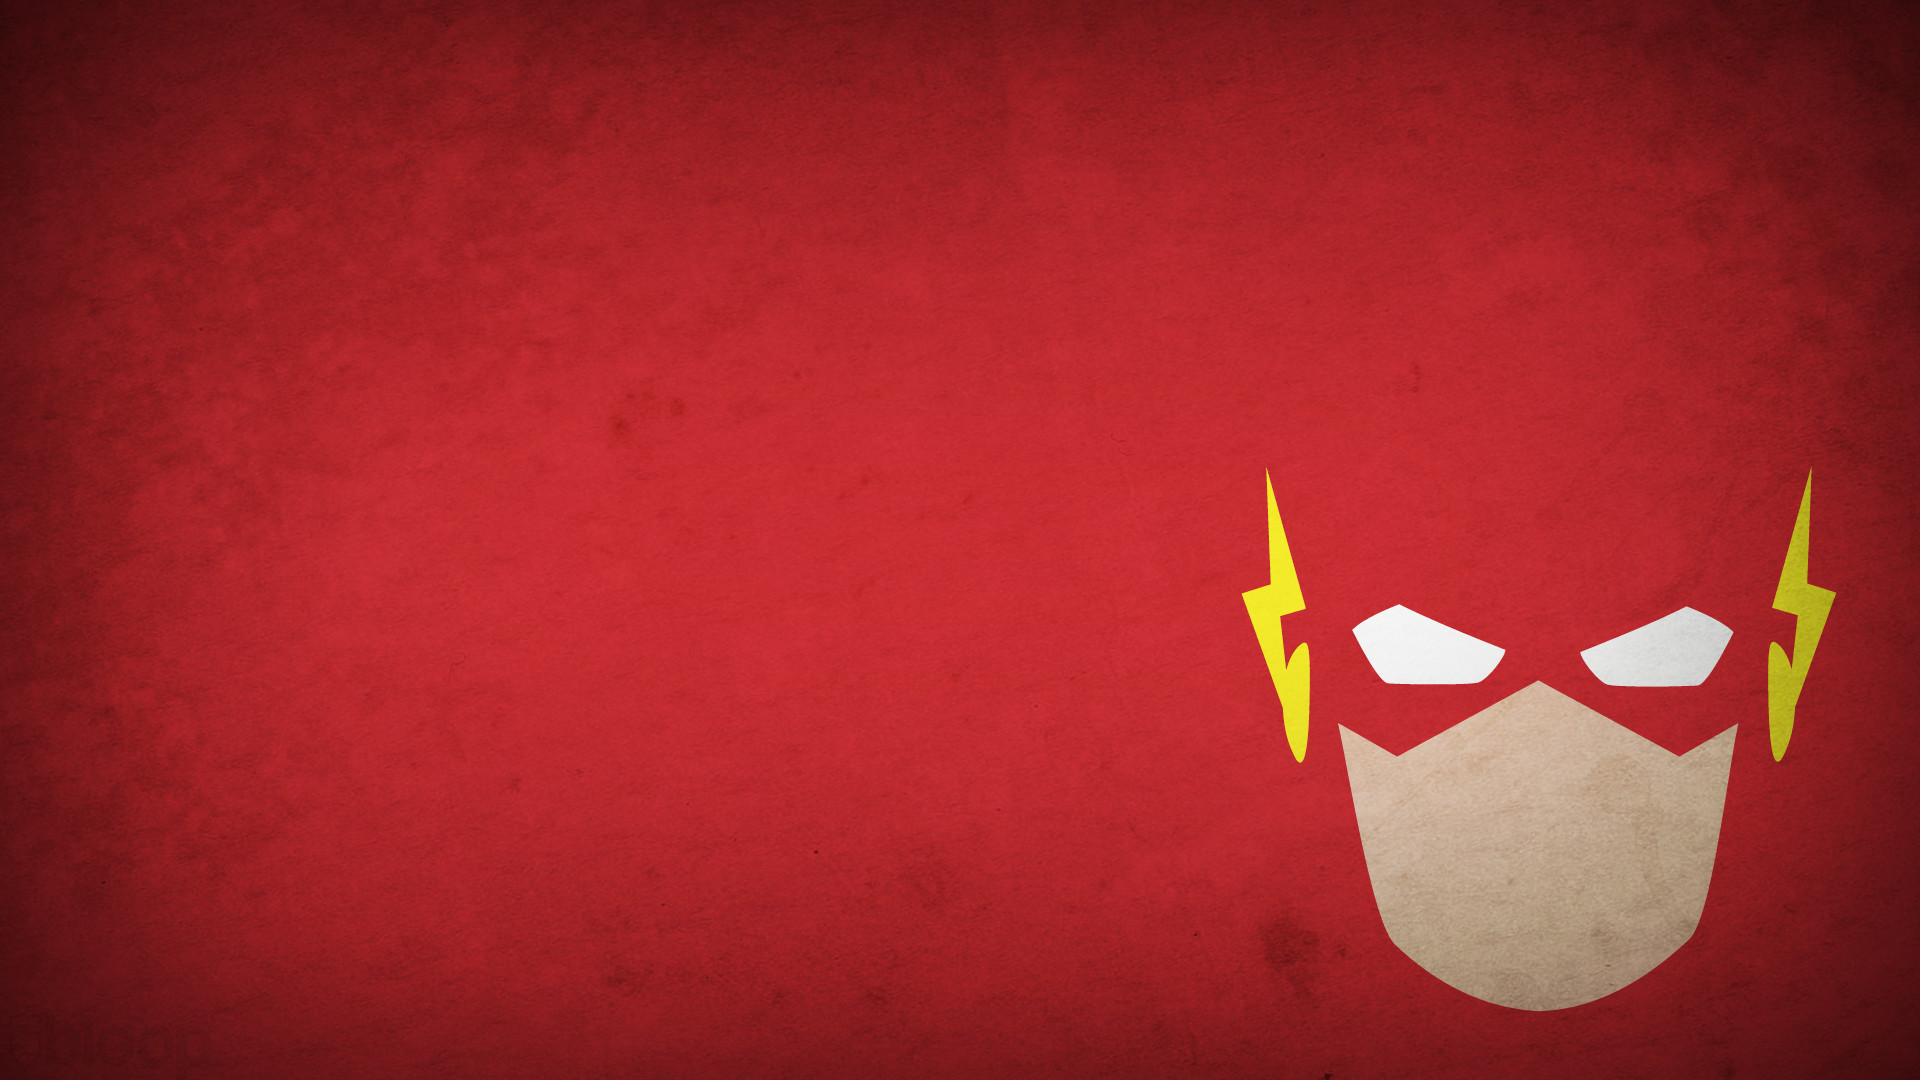 Wallpapers Of The Day: Flash